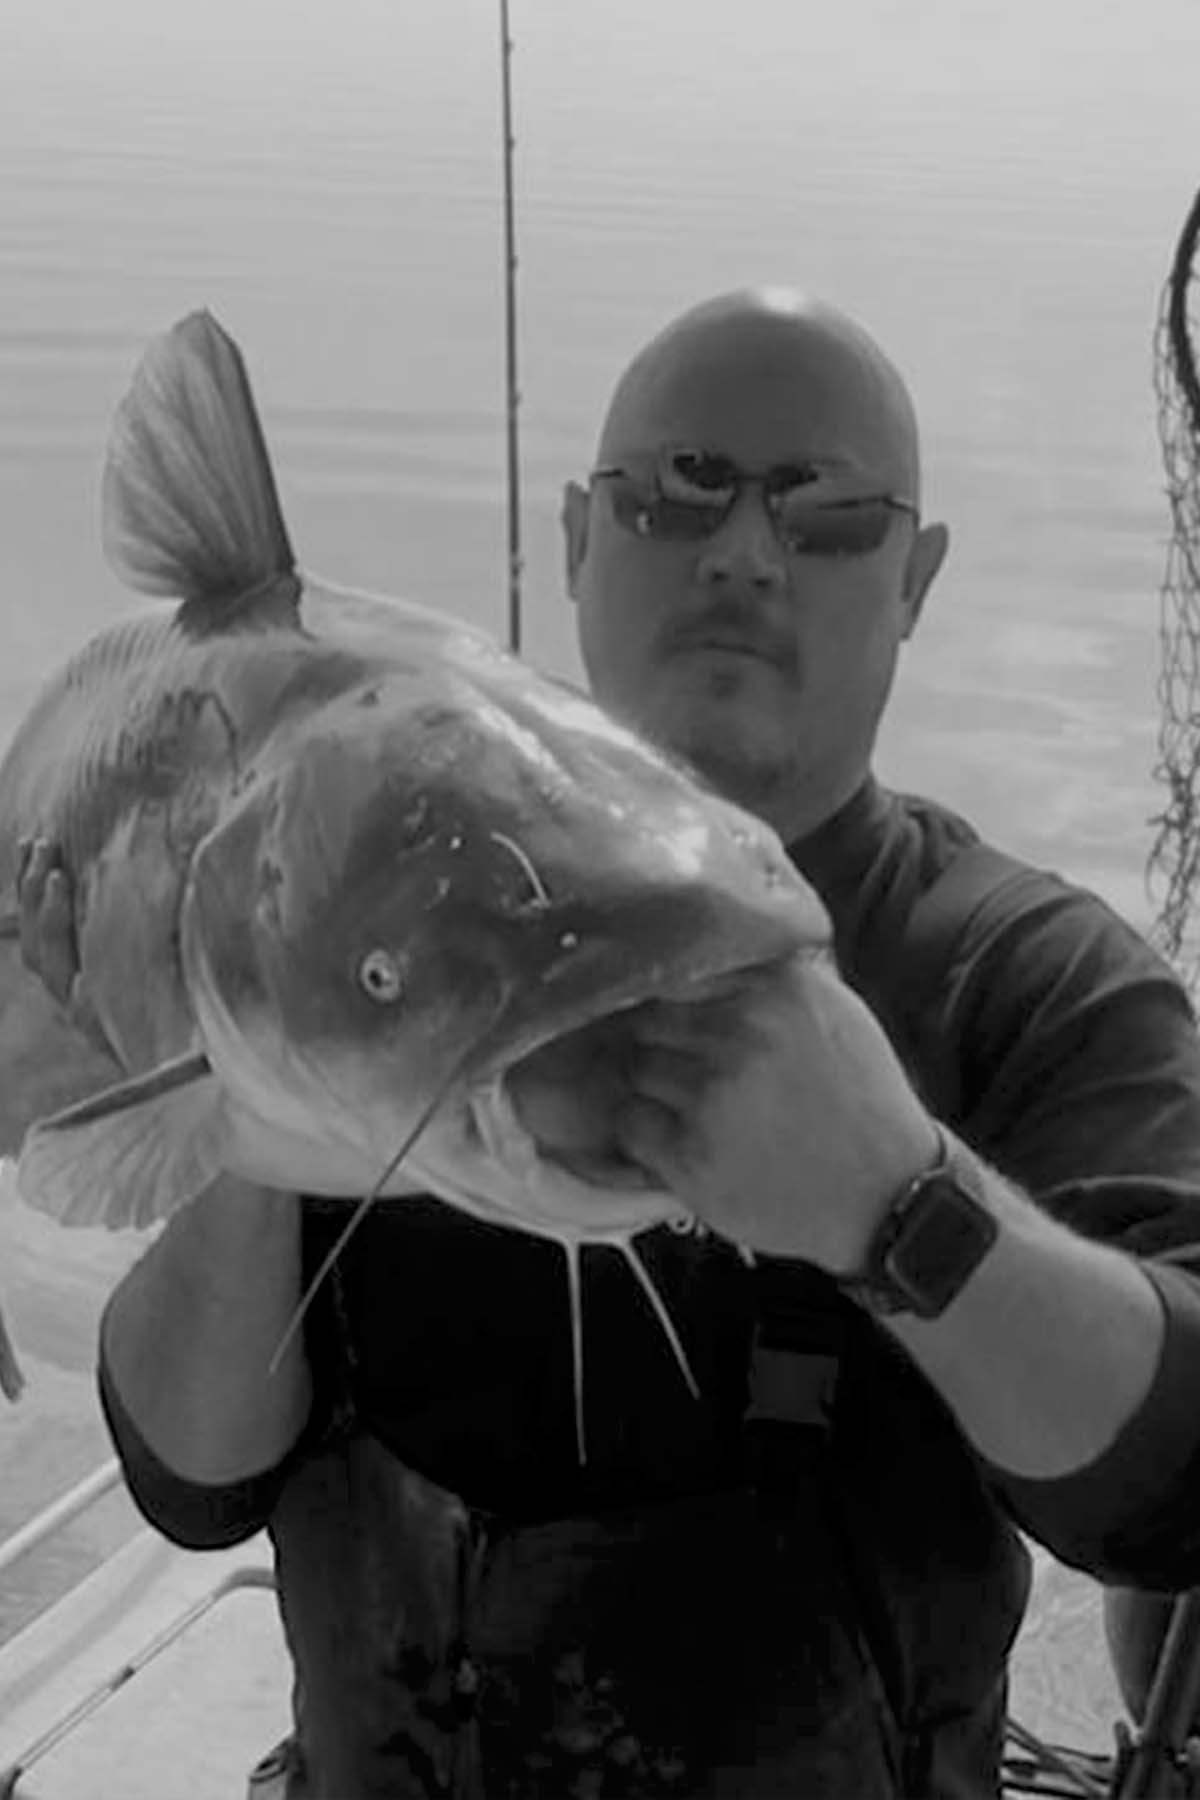 catfish-guide-whisker-seeker-tackle-cattin-around-adventures-texas-b-w-1.jpg